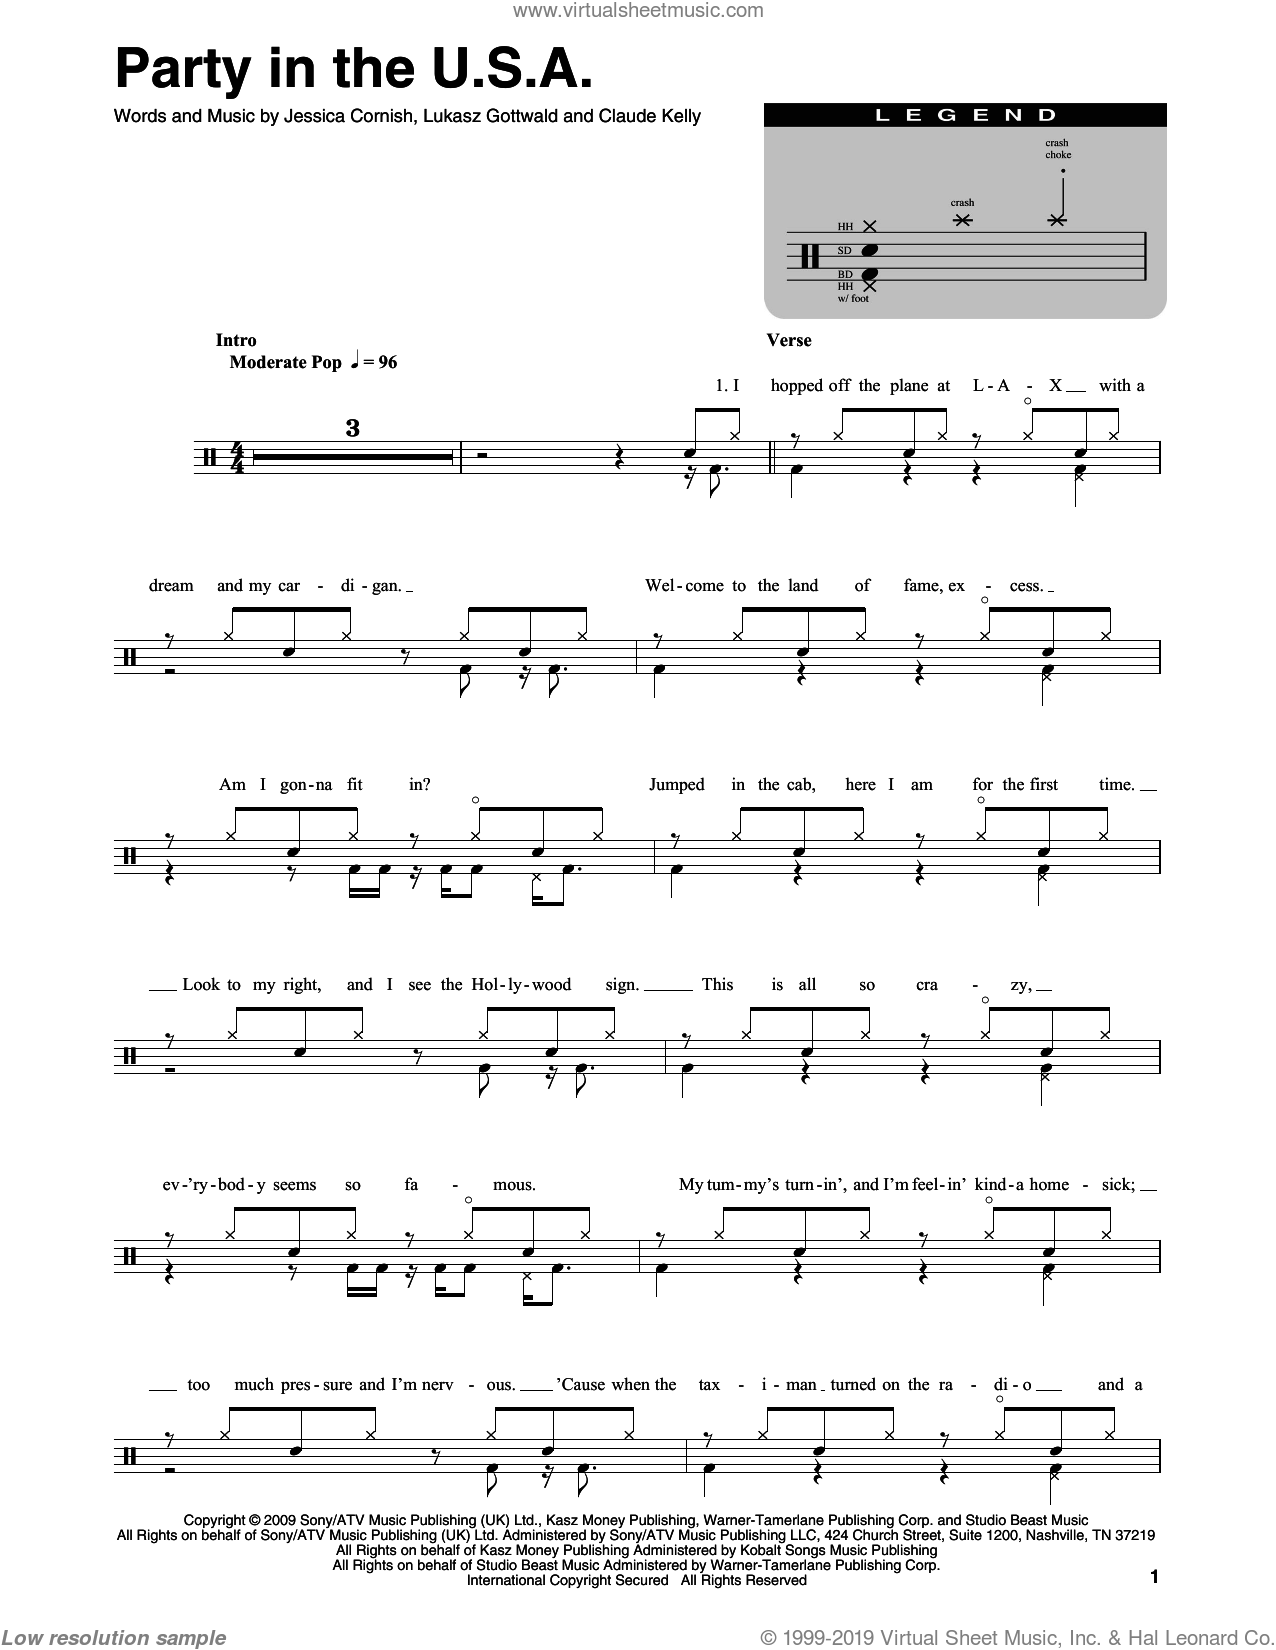 Party In The U.S.A. sheet music for drums by Miley Cyrus, Claude Kelly, Jessica Cornish and Lukasz Gottwald, intermediate skill level